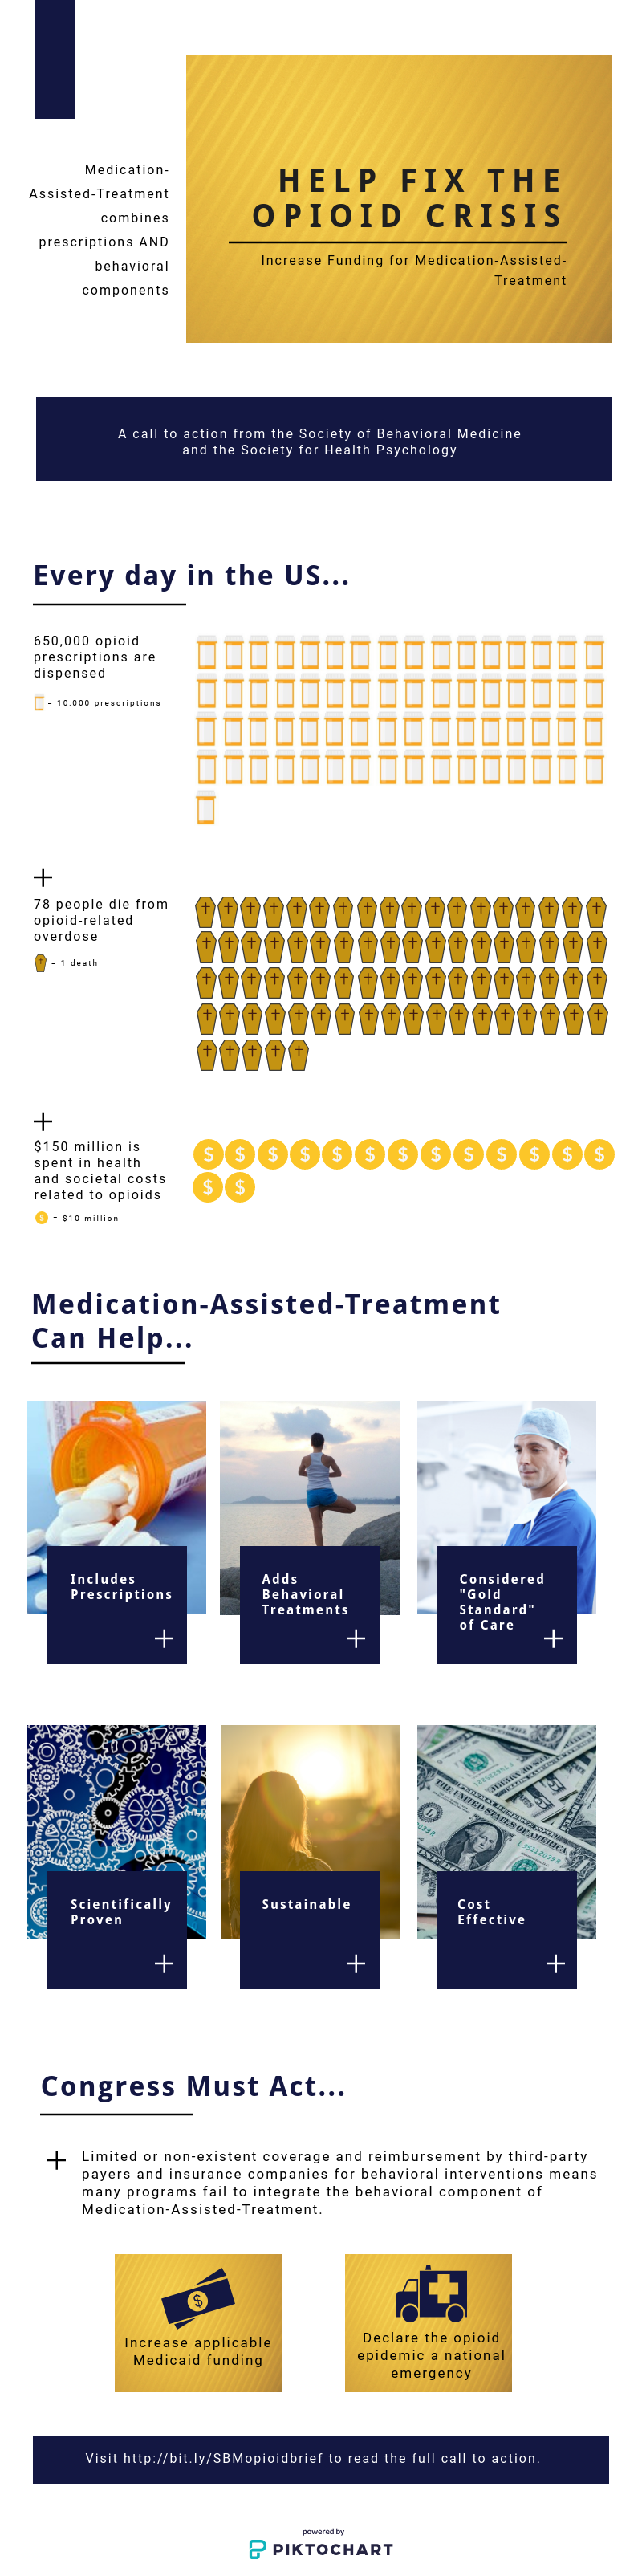 Infographic: Help Fix the Opioid Crisis